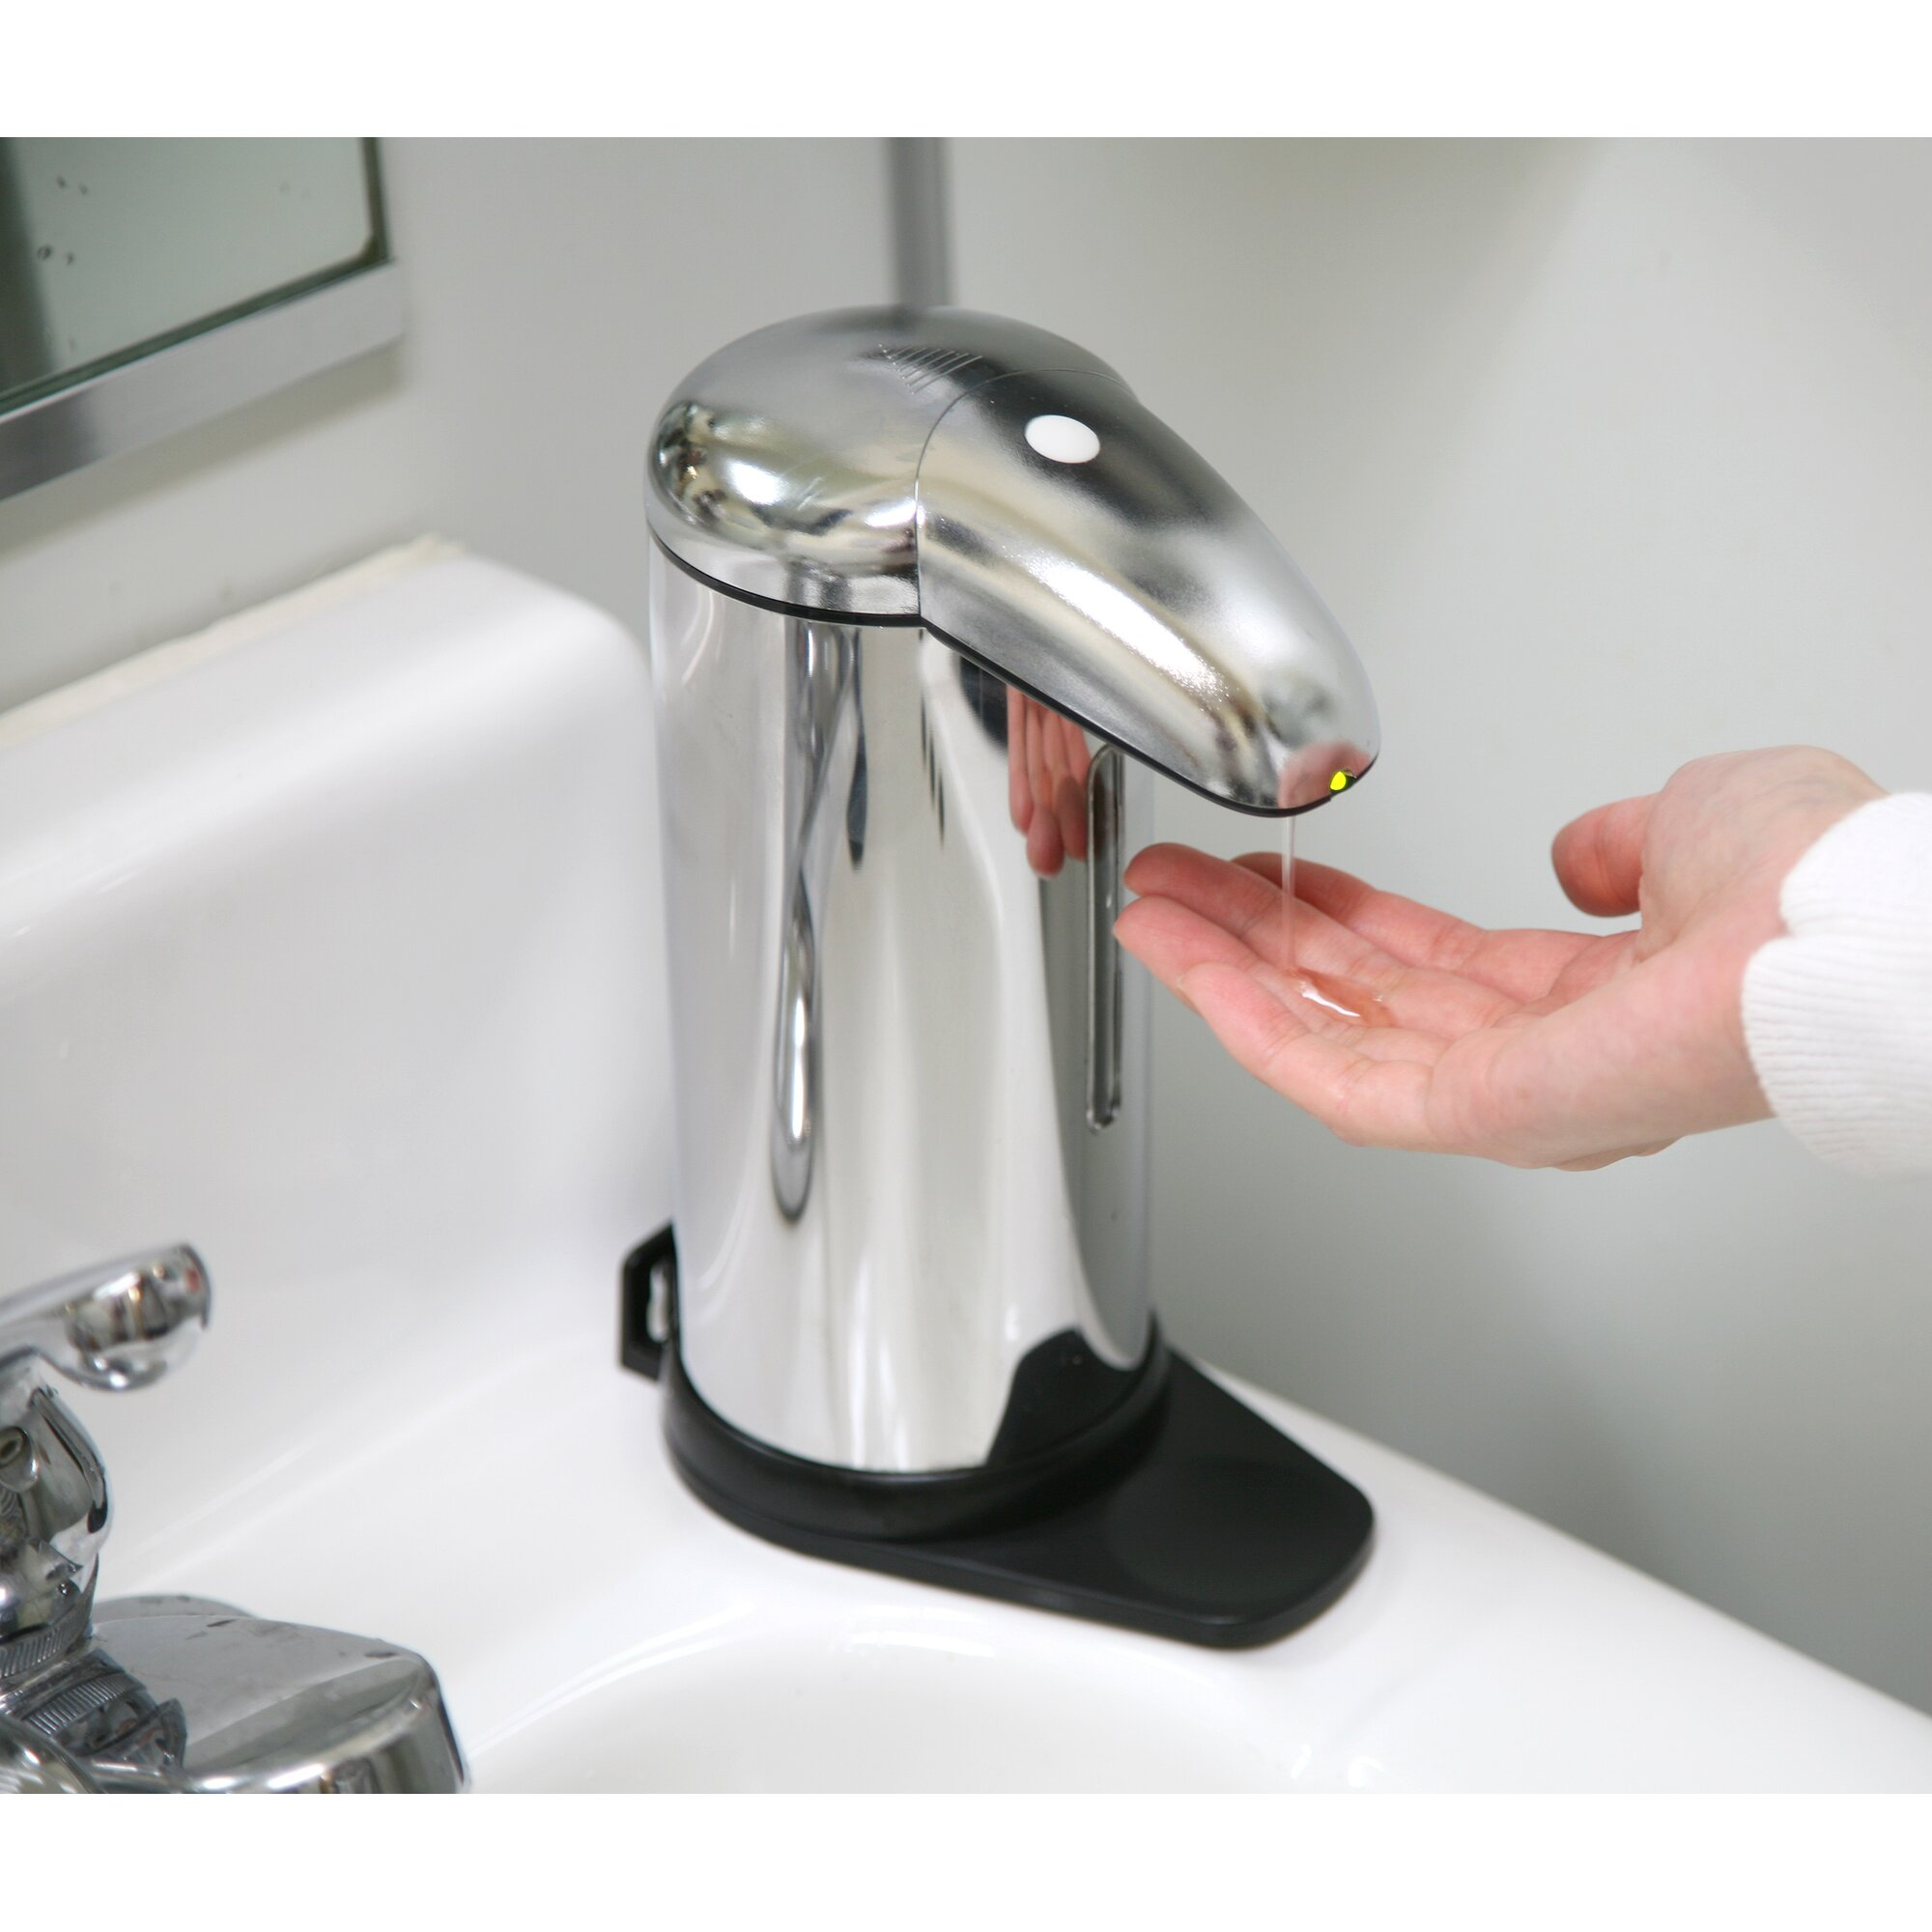 Automatic Sensor Commercial Soap Dispenser Amp Reviews